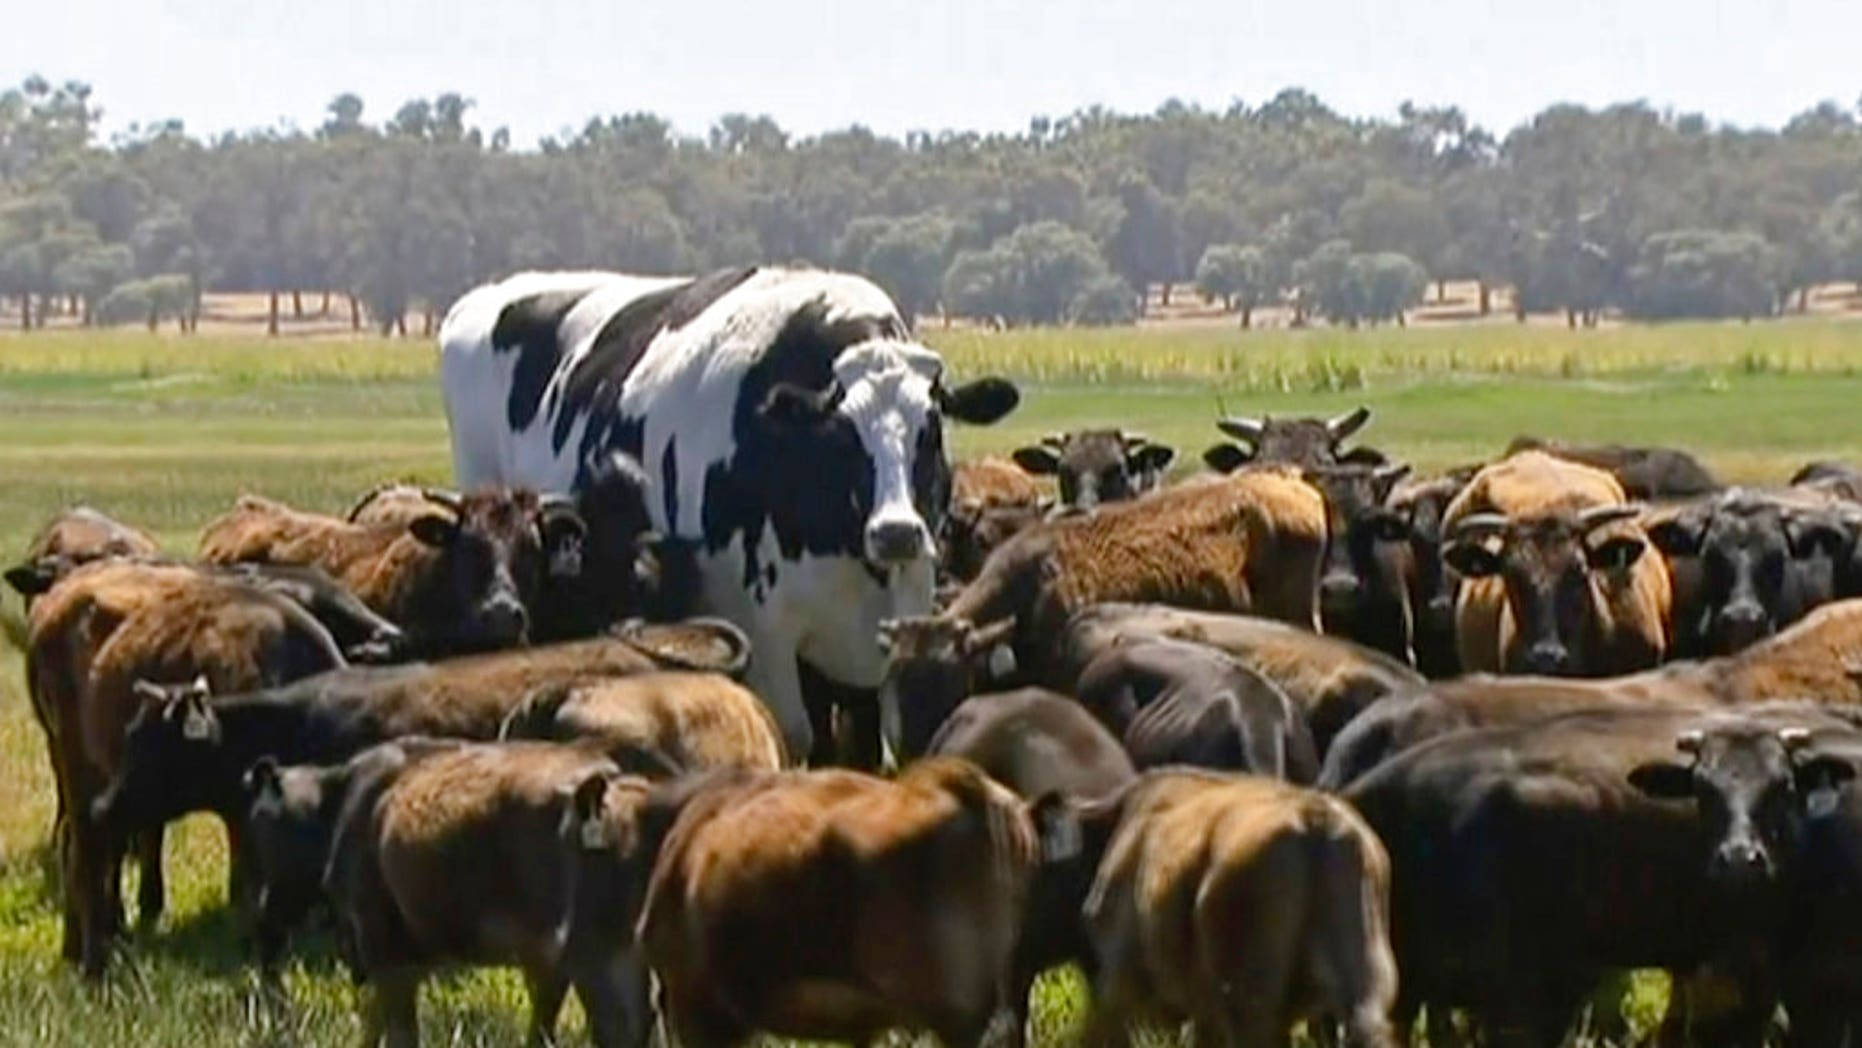 See the giant cow that's taking over your social media feeds